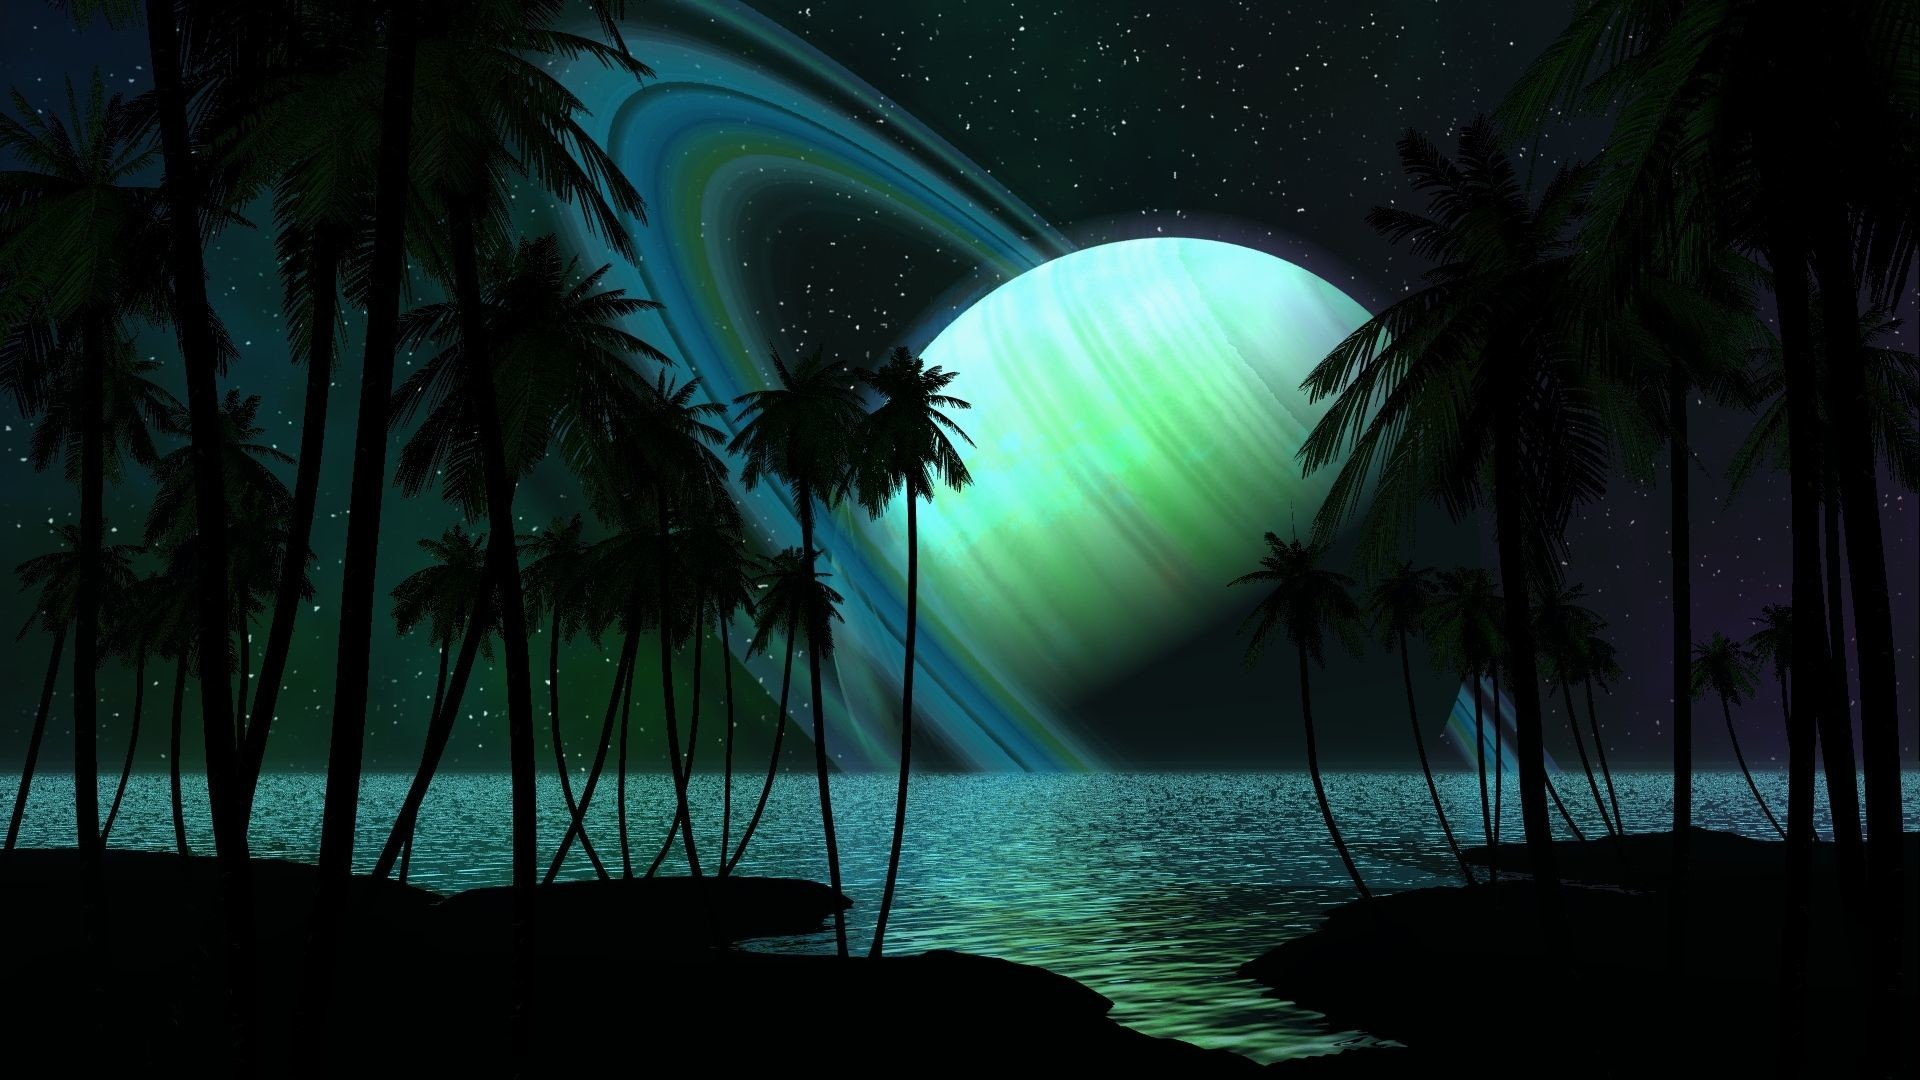 Saturn Wallpapers Hd Wallpaper Collections 4kwallpaperwiki